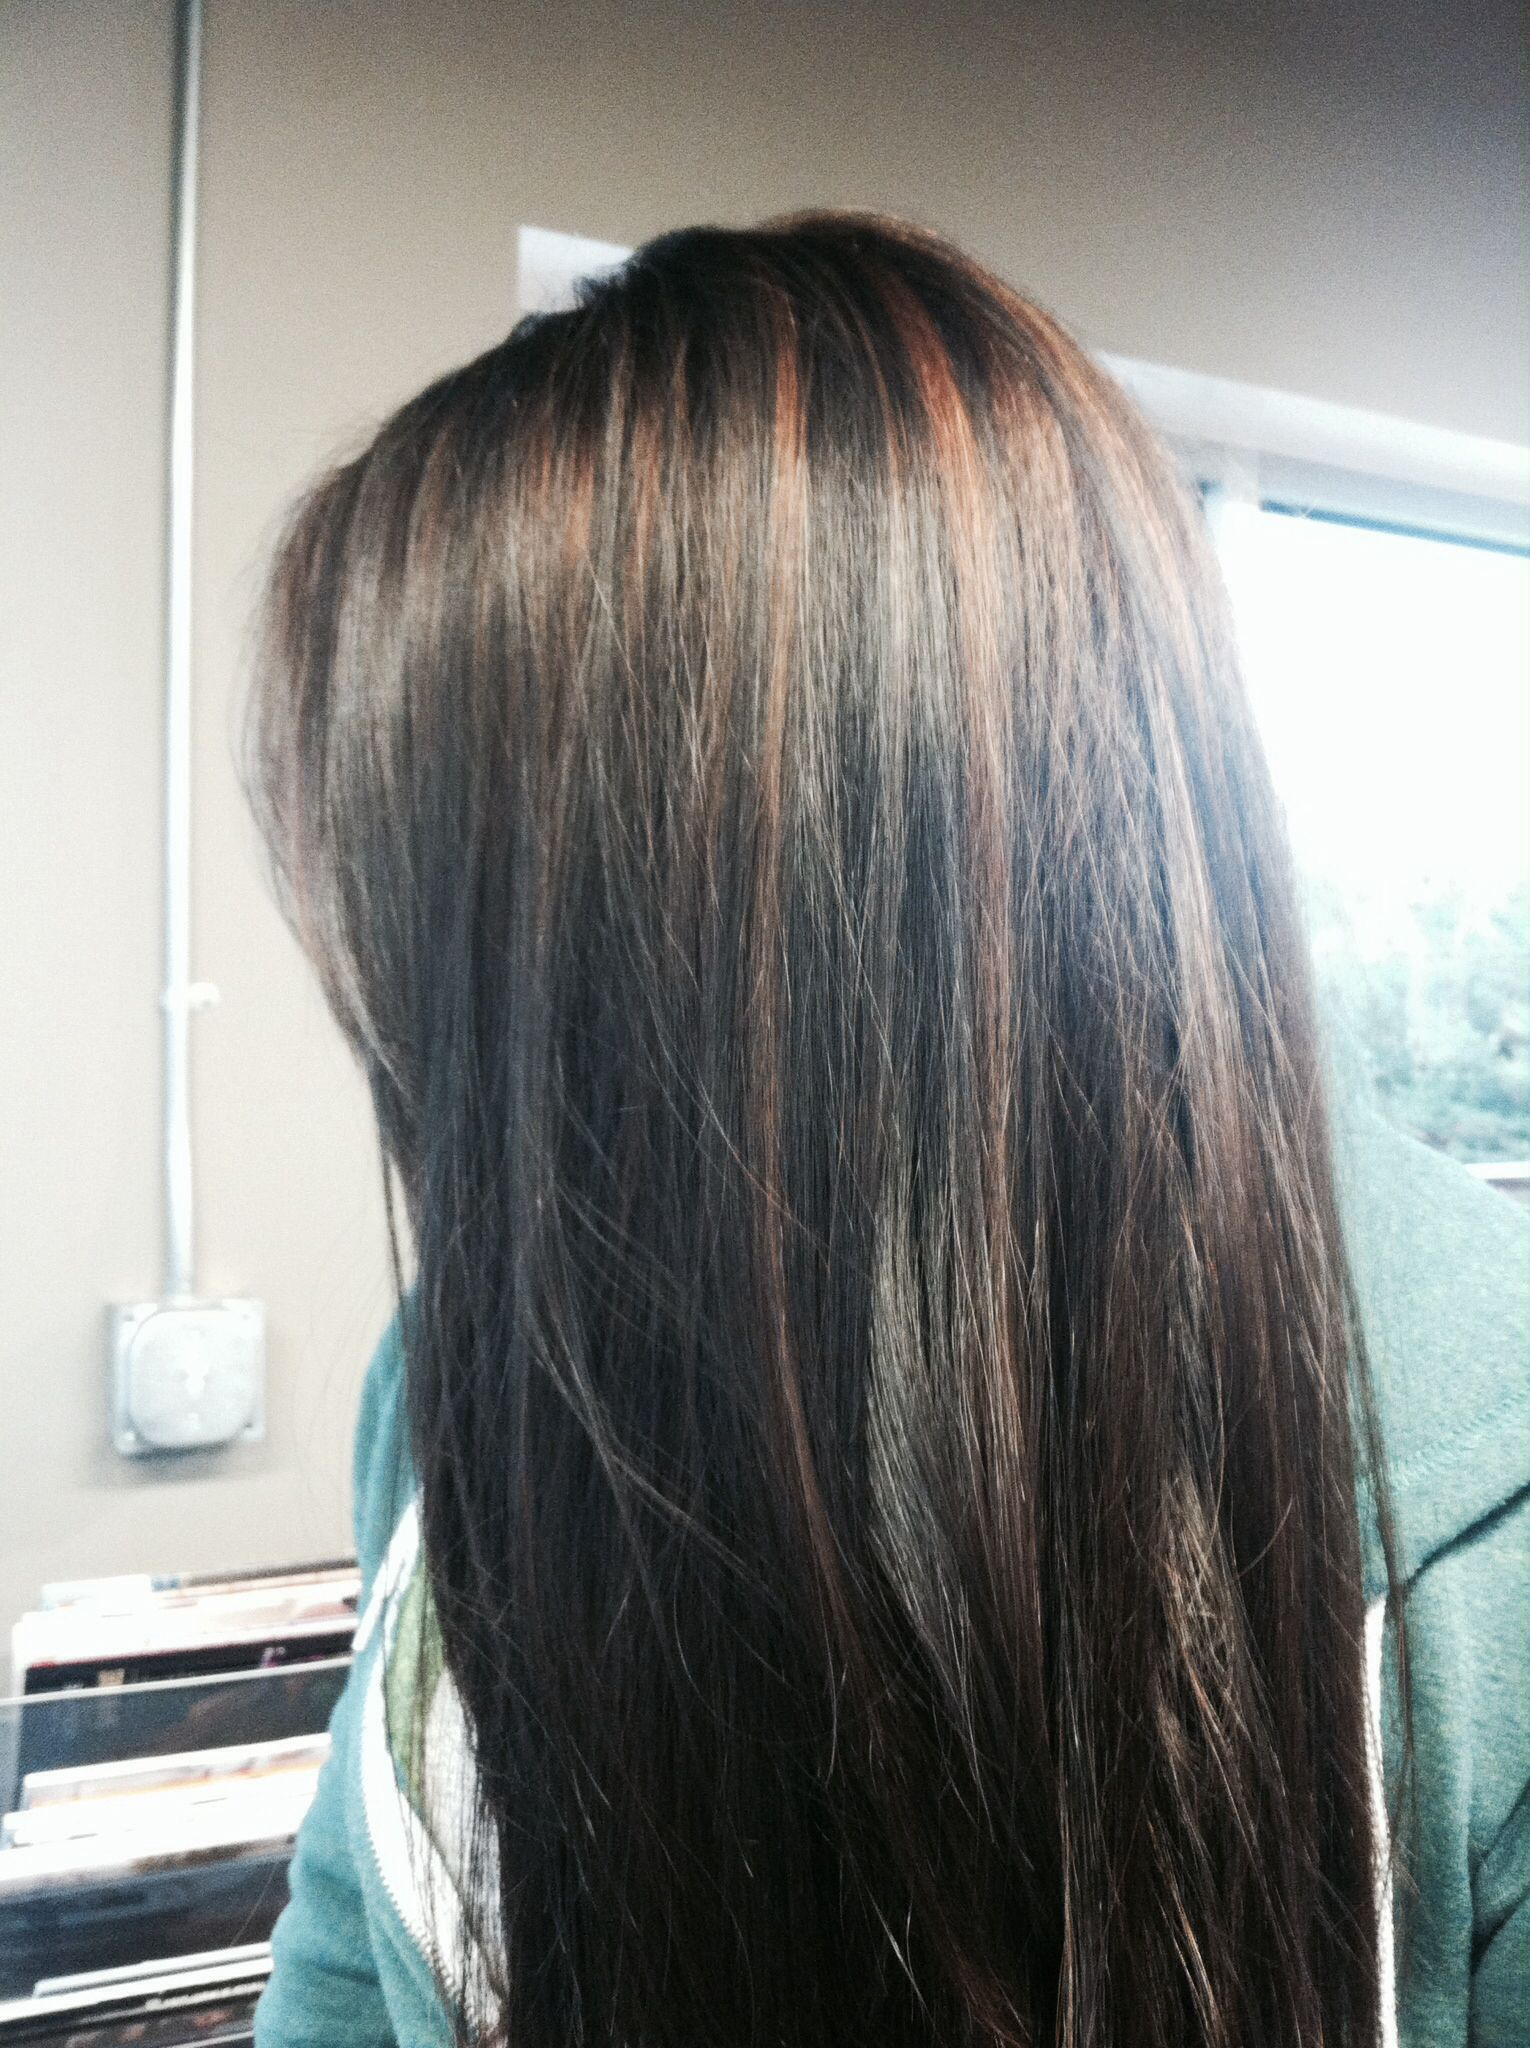 Cinnamon Brown Highlights With Dark Black Hair I Think Ill Get My